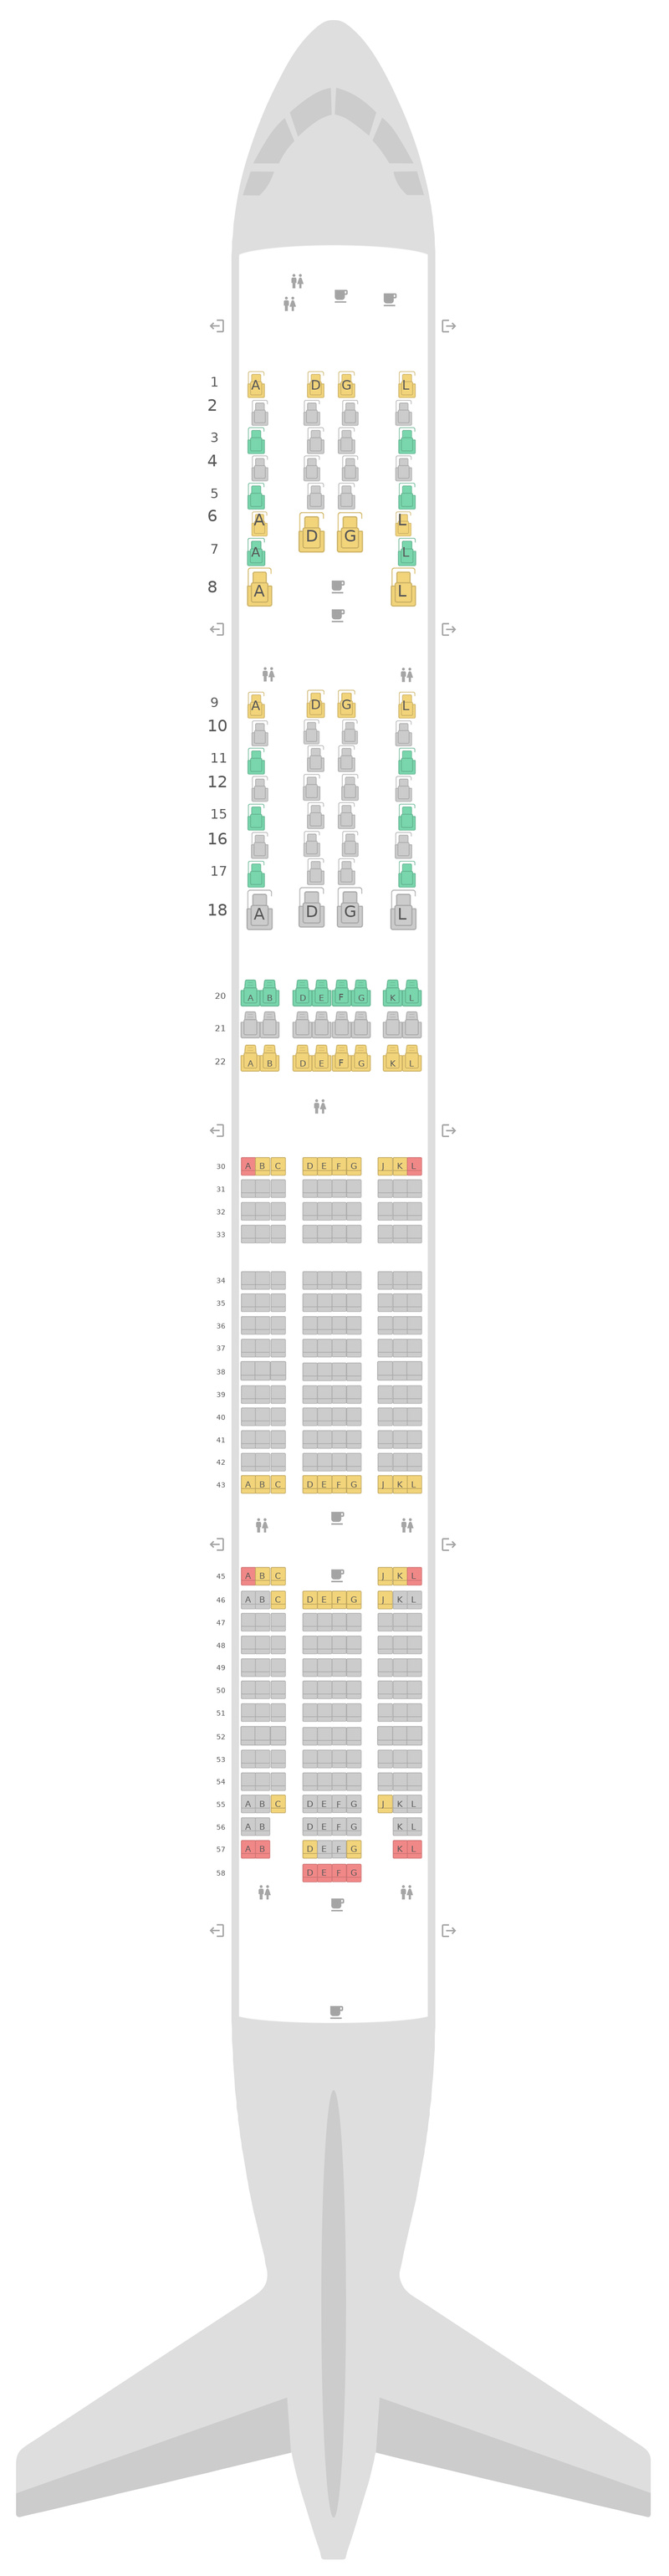 Seat Map United Boeing 777-300ER (77W)